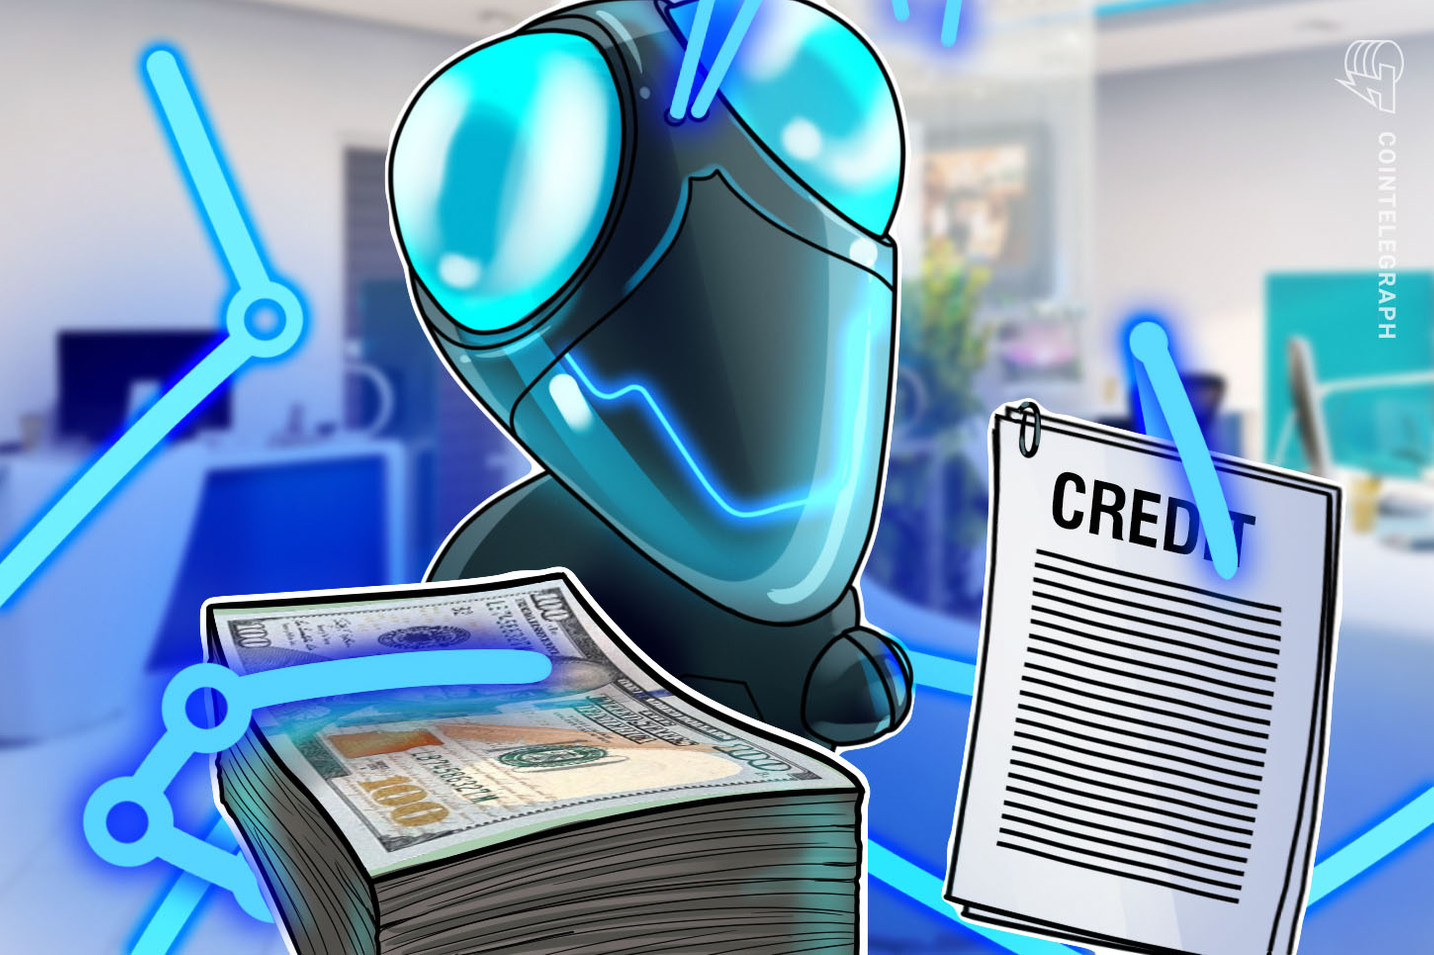 Samsung-Backed Blocko to Build Blockchain-Based Credit System for Arab Bank